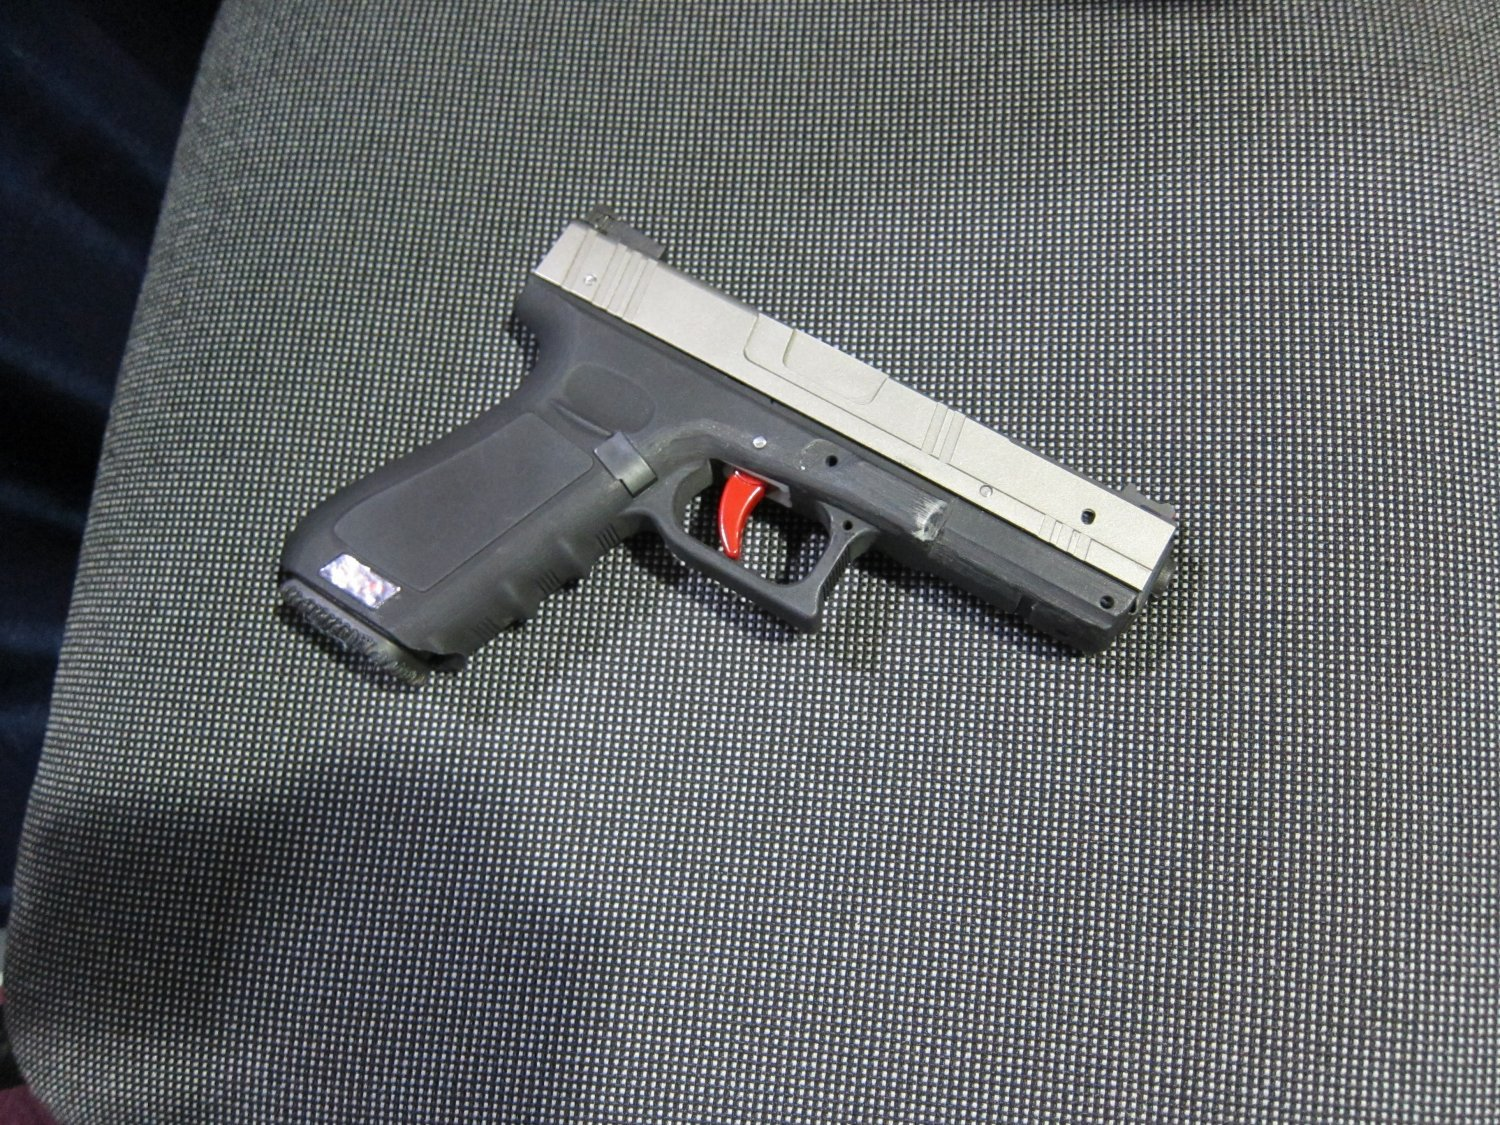 SHOT SHOW 2010 SIRT Training Pistol 2 <!  :en  >Next Level Training (NLT) SIRT Training Pistol: Glock Simulating Laser Training Pistol (with Auto Resetting Trigger) for Better Shooting and Trigger Mechanics<!  :  >